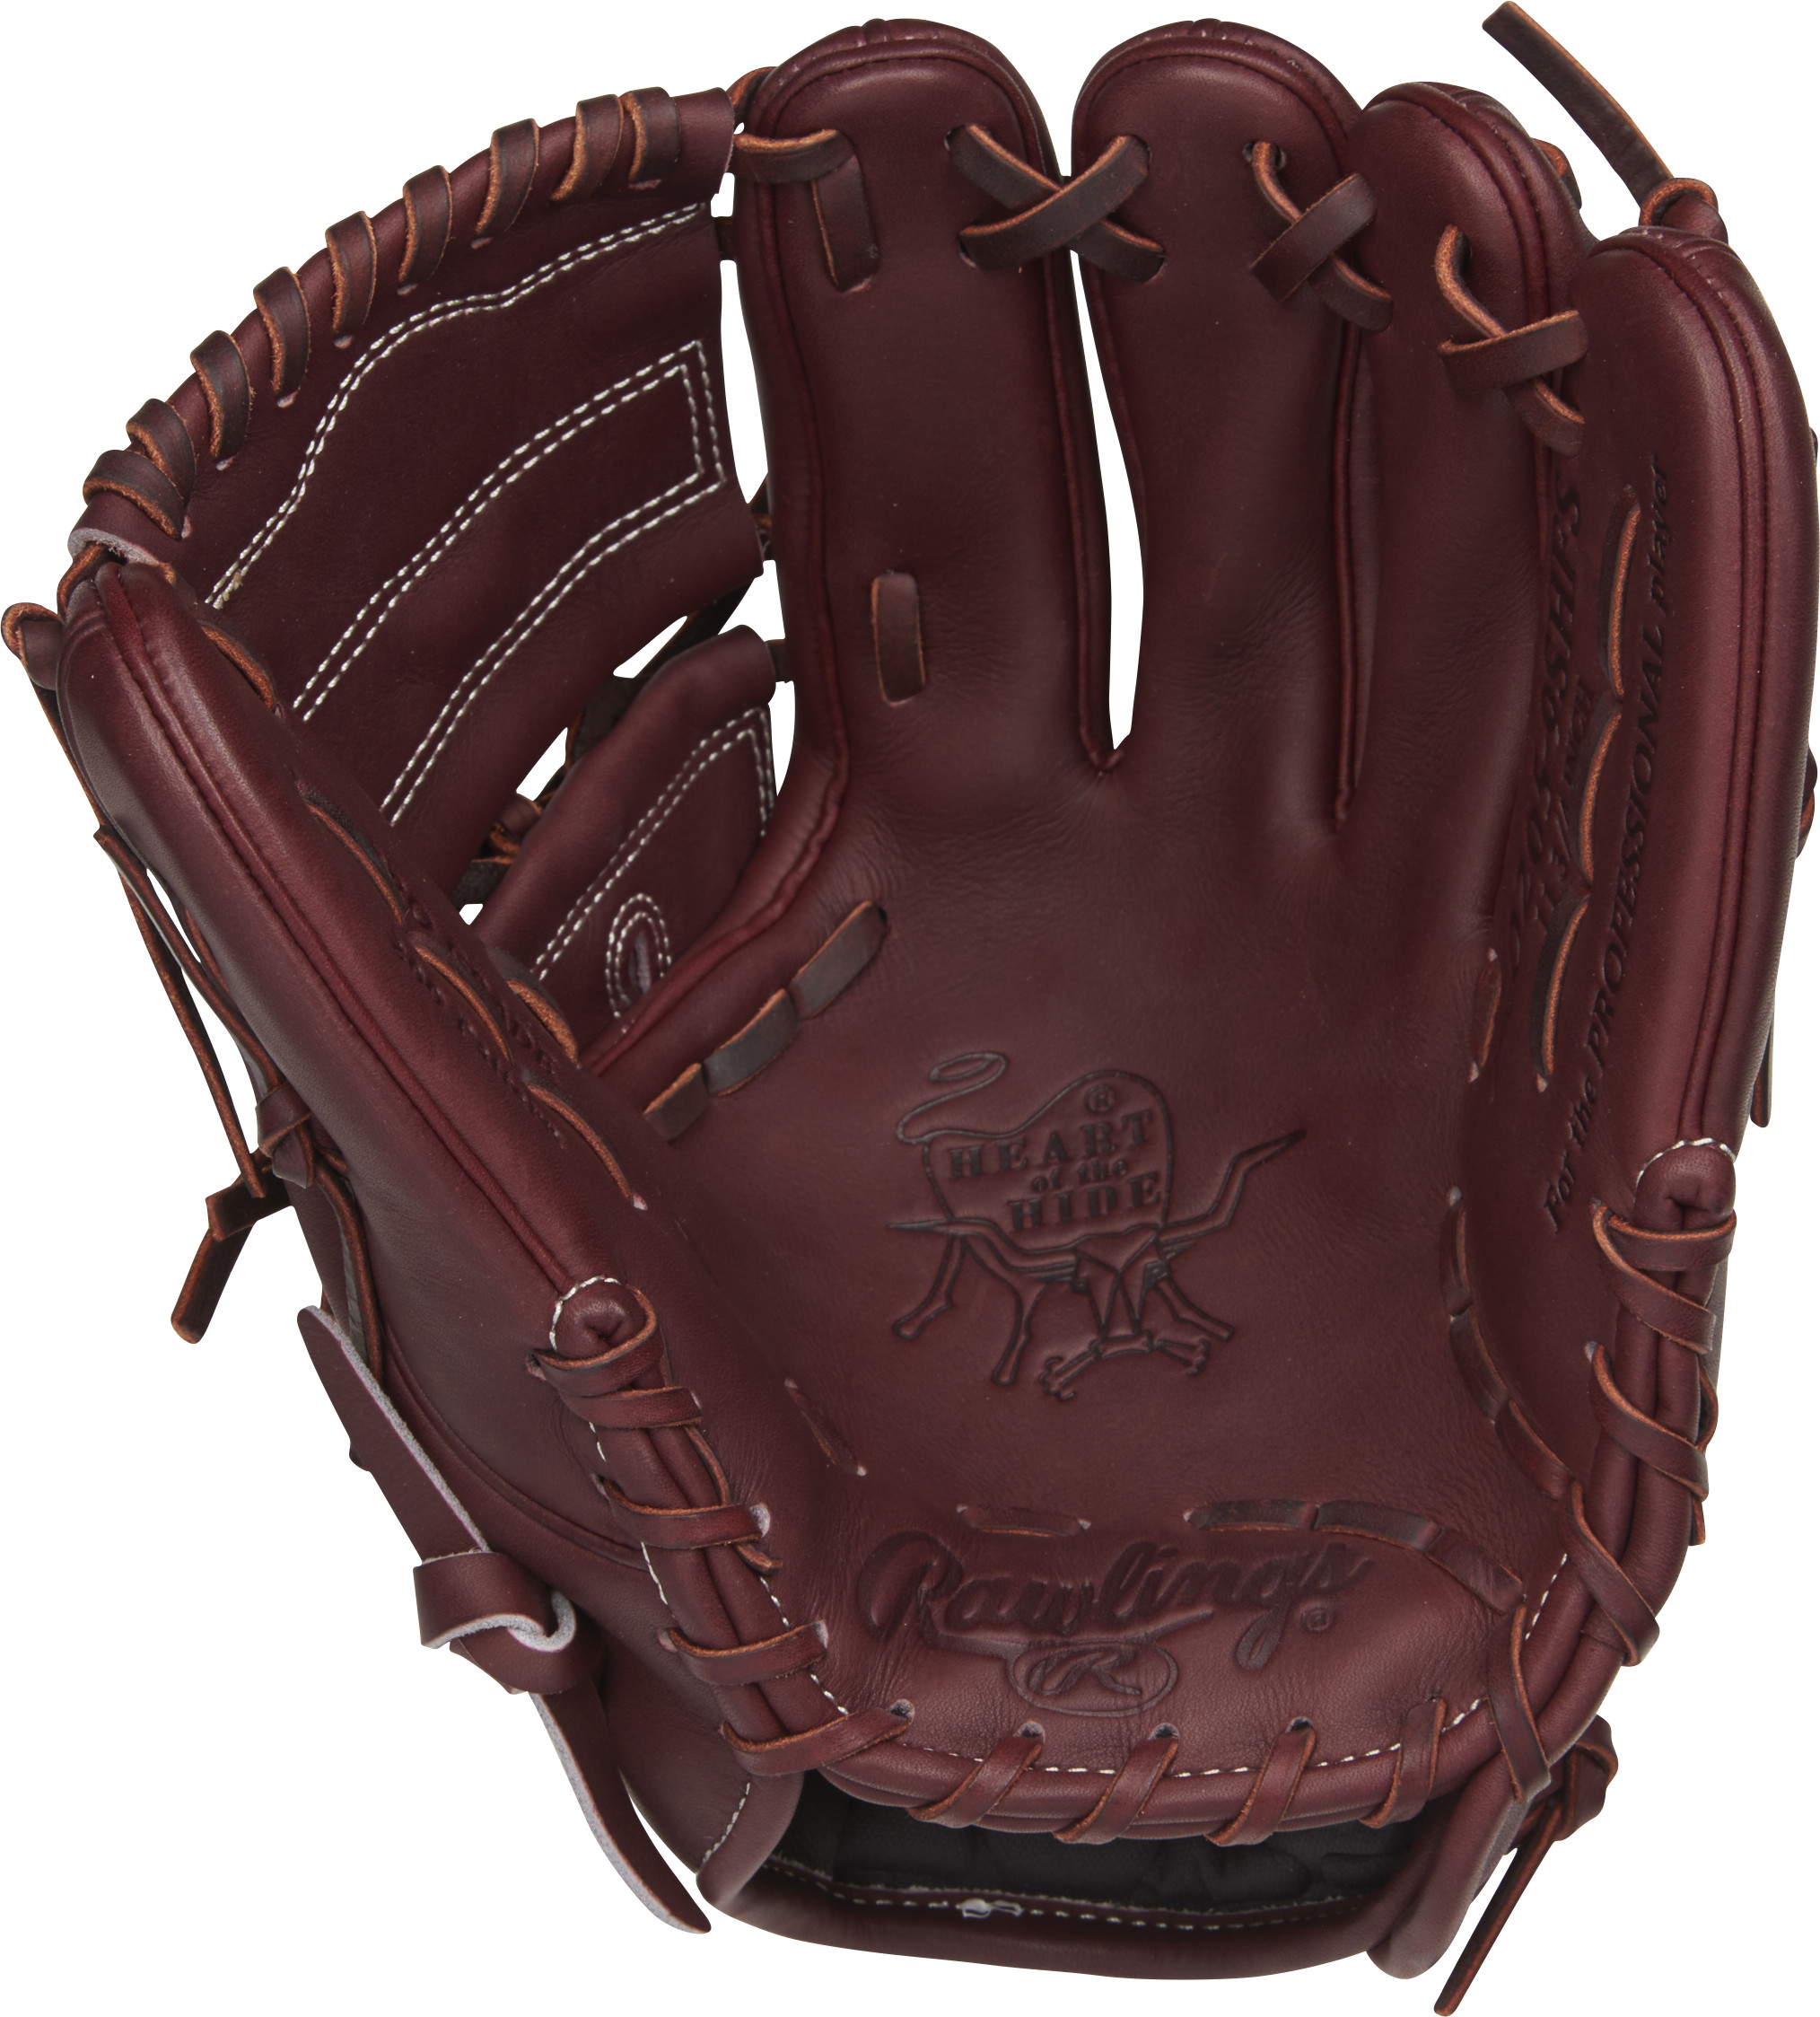 http://www.bestbatdeals.com/images/gloves/rawlings/PRO205-9SHFS-1.jpg